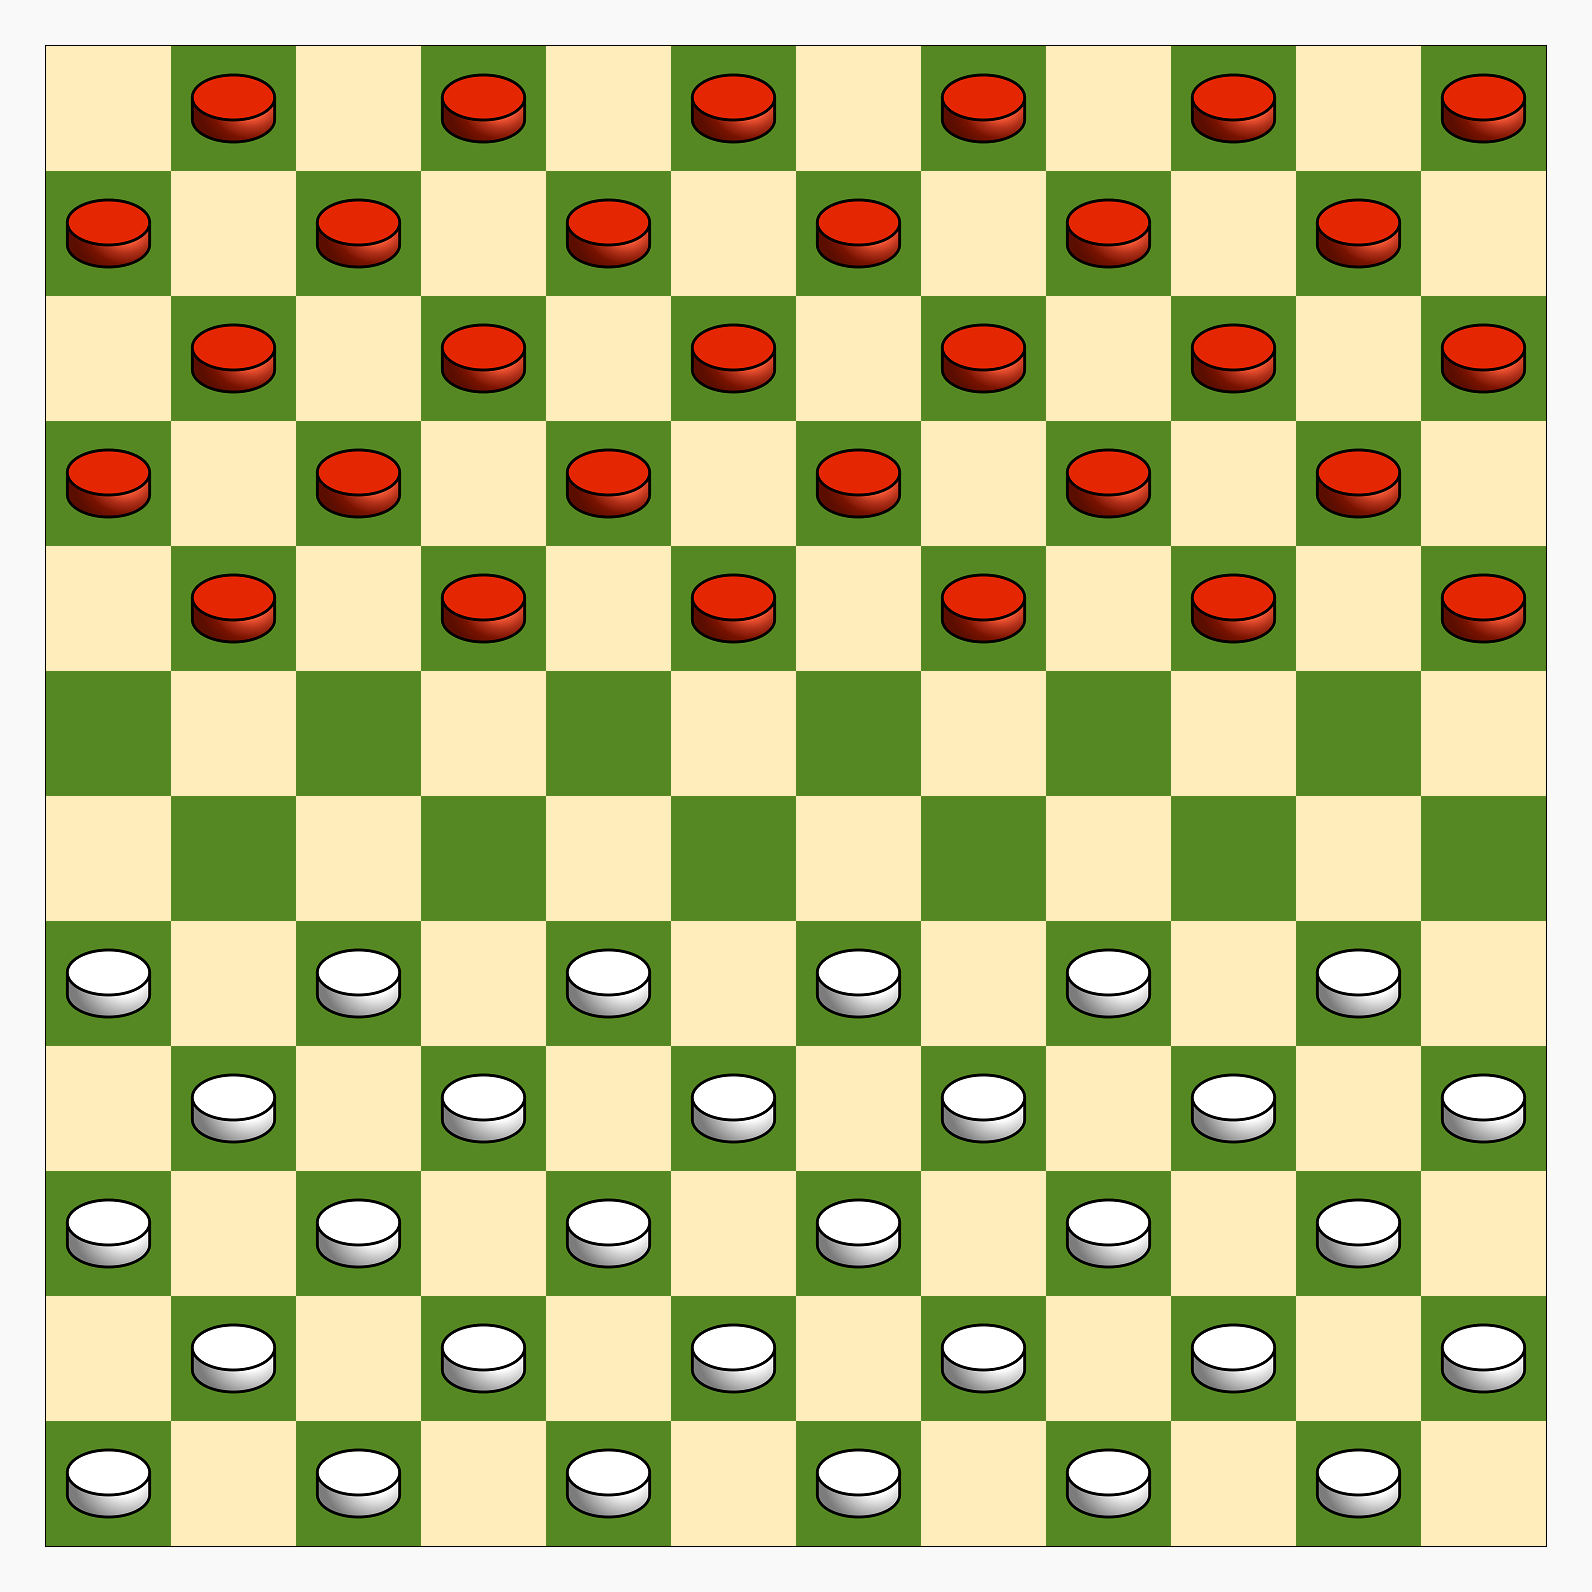 picture about Printable Checkers Board named Canadian checkers - Wikipedia